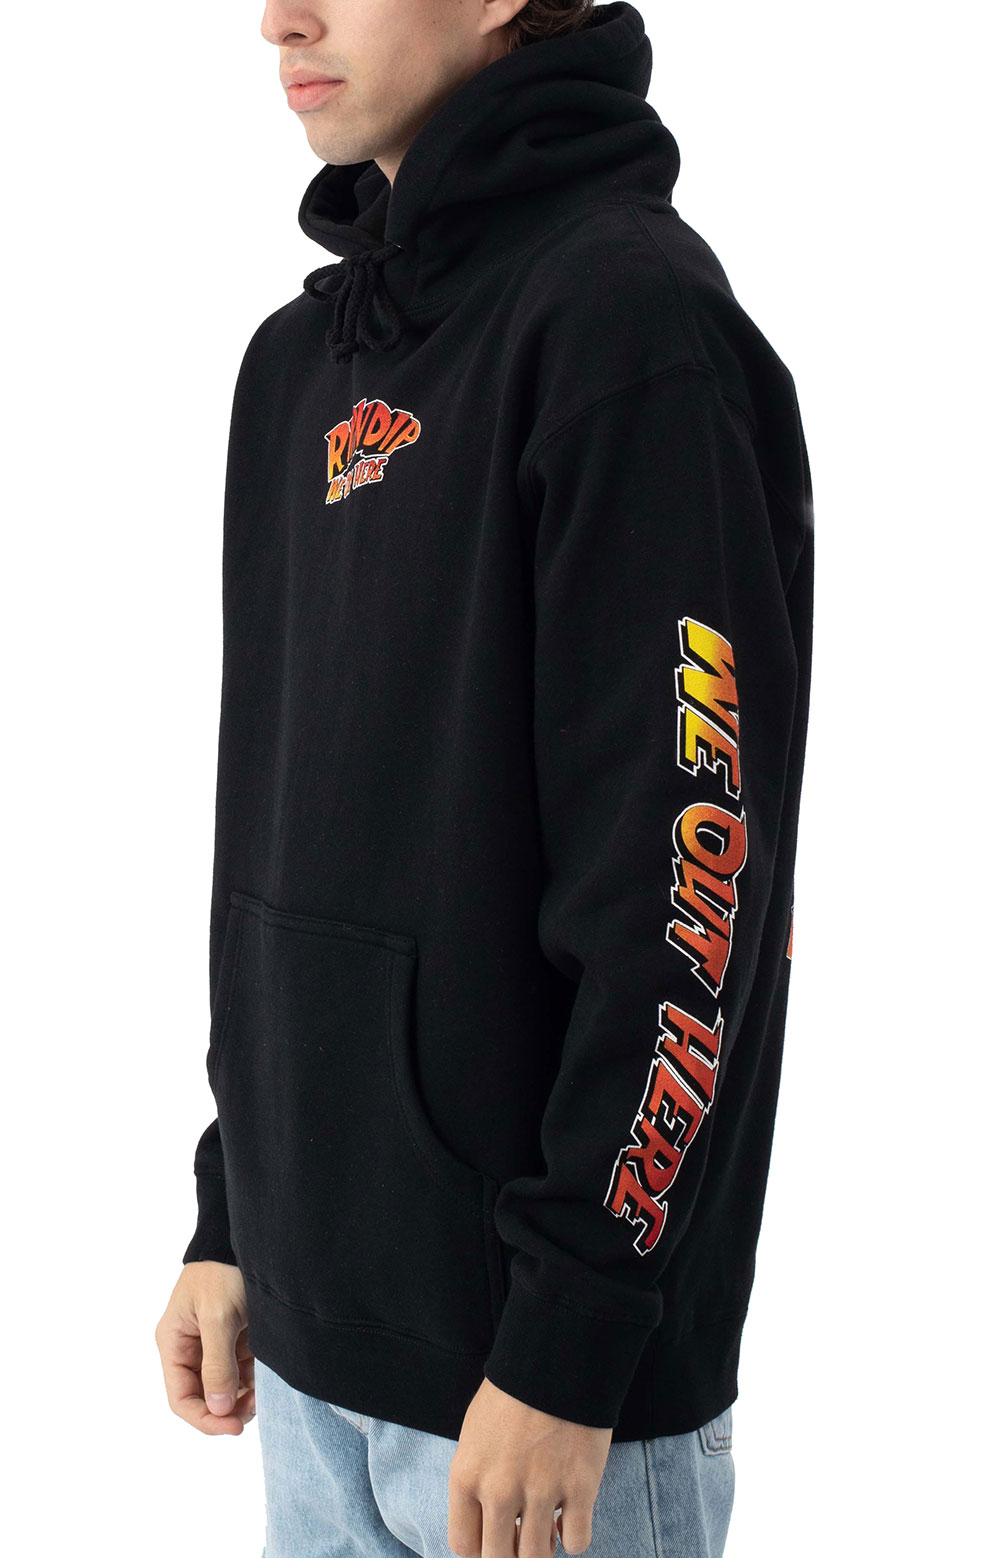 Out Of This World Pullover Hoodie - Black  2